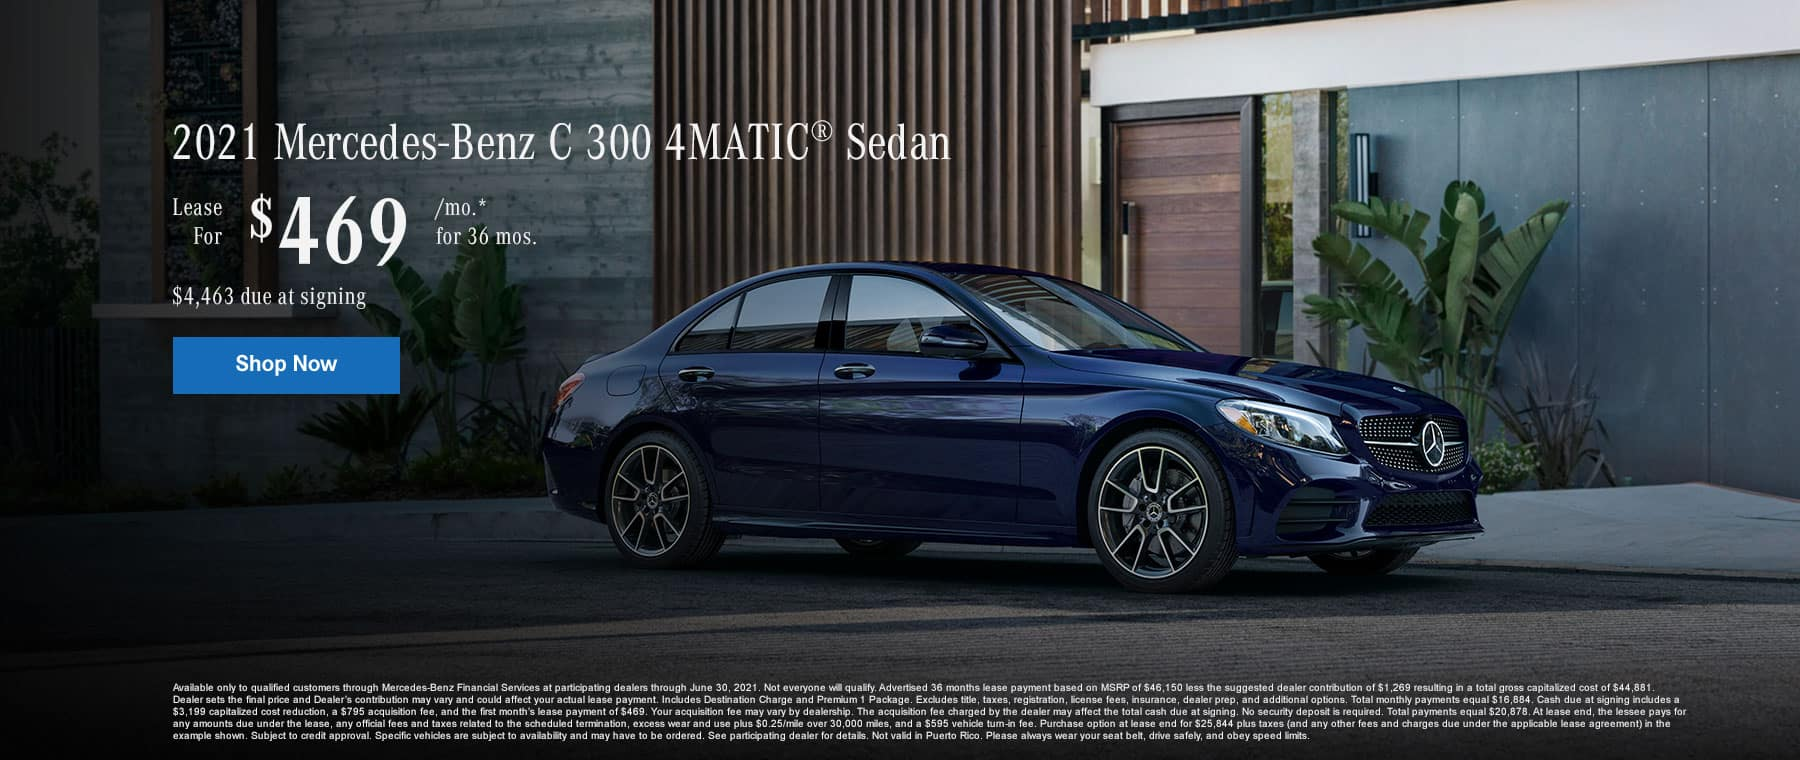 2021 Mercedes-Benz C 300 4MATIC® SUV Lease for $469/month for 36 months. $4,463 due at signing